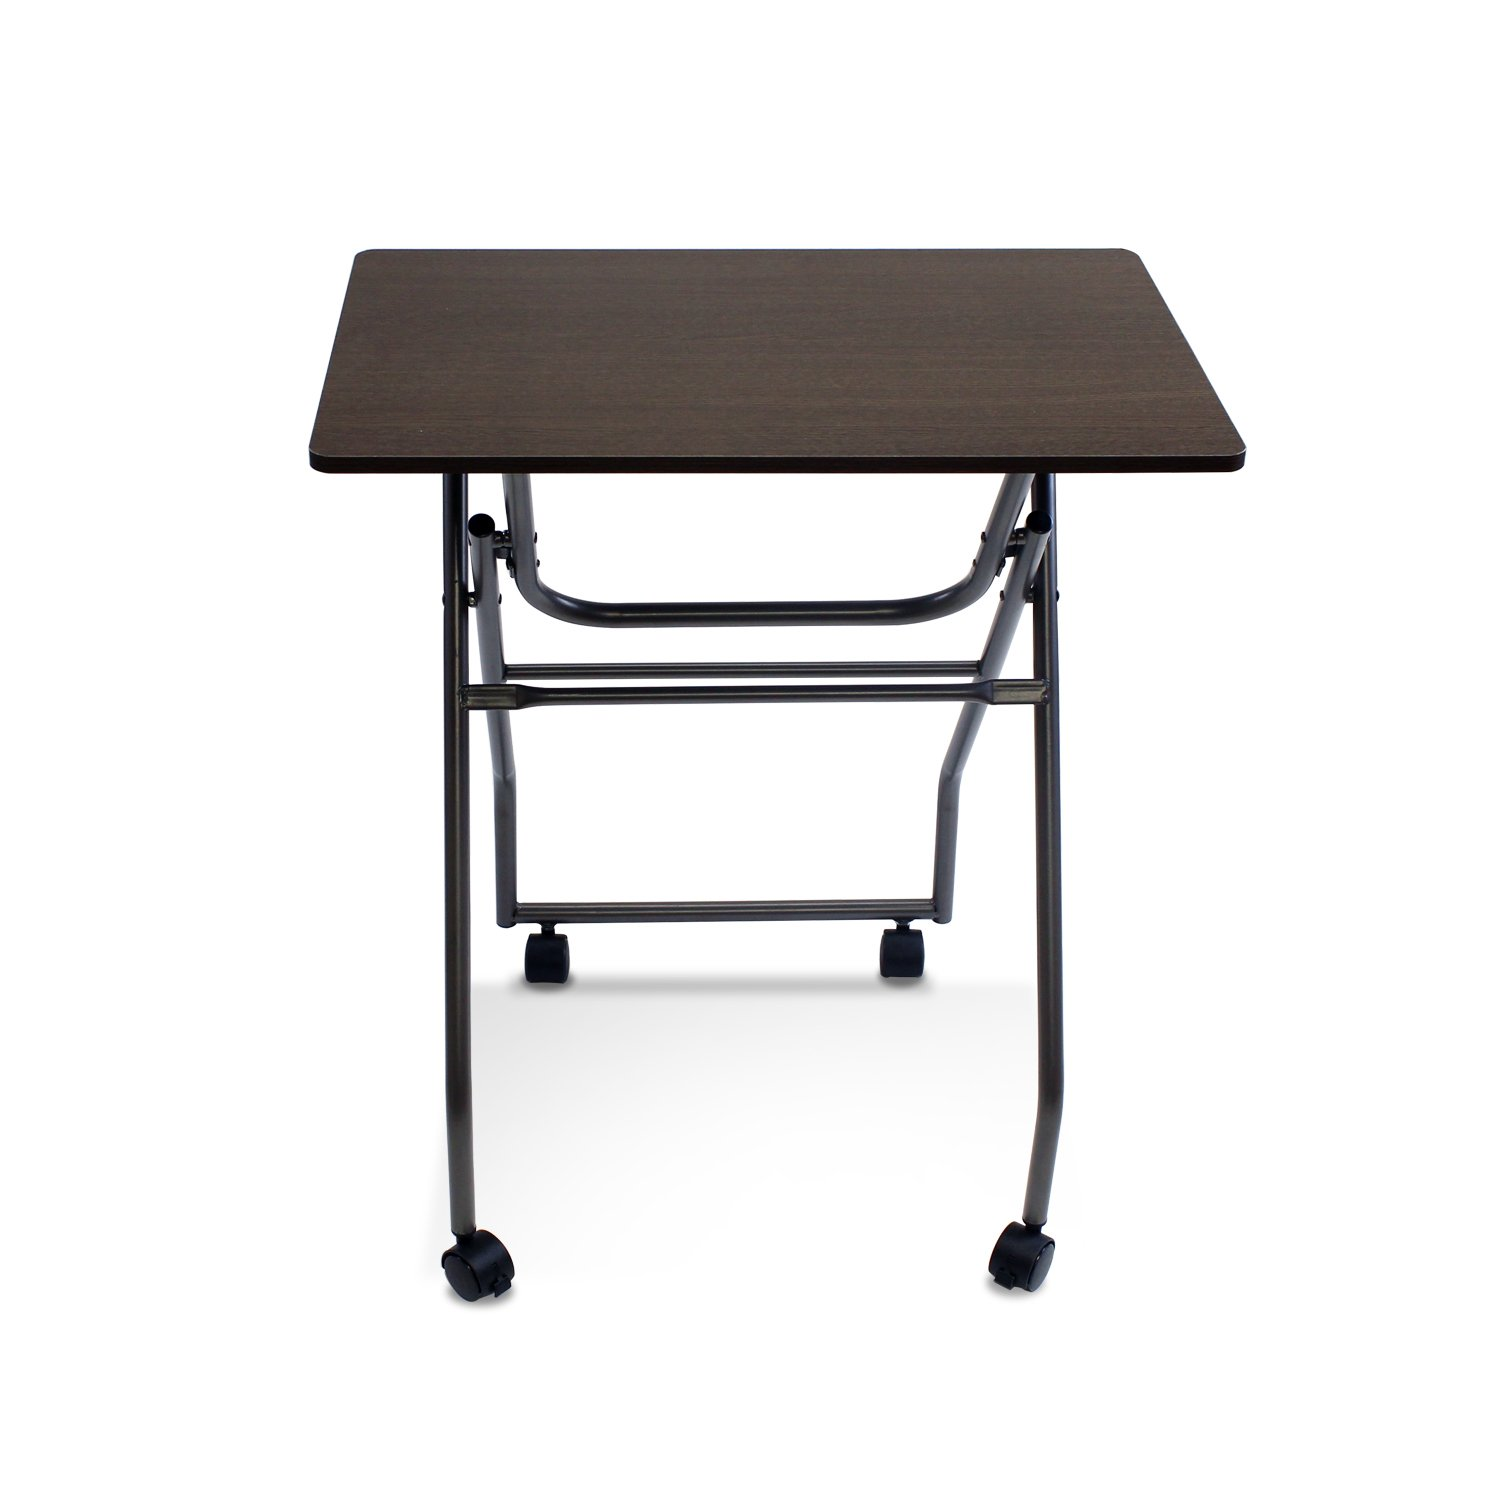 Furinno 11044DBR/GY Easi Folding Multipurpose Tray Table, Dark Brown/Grey by Furinno